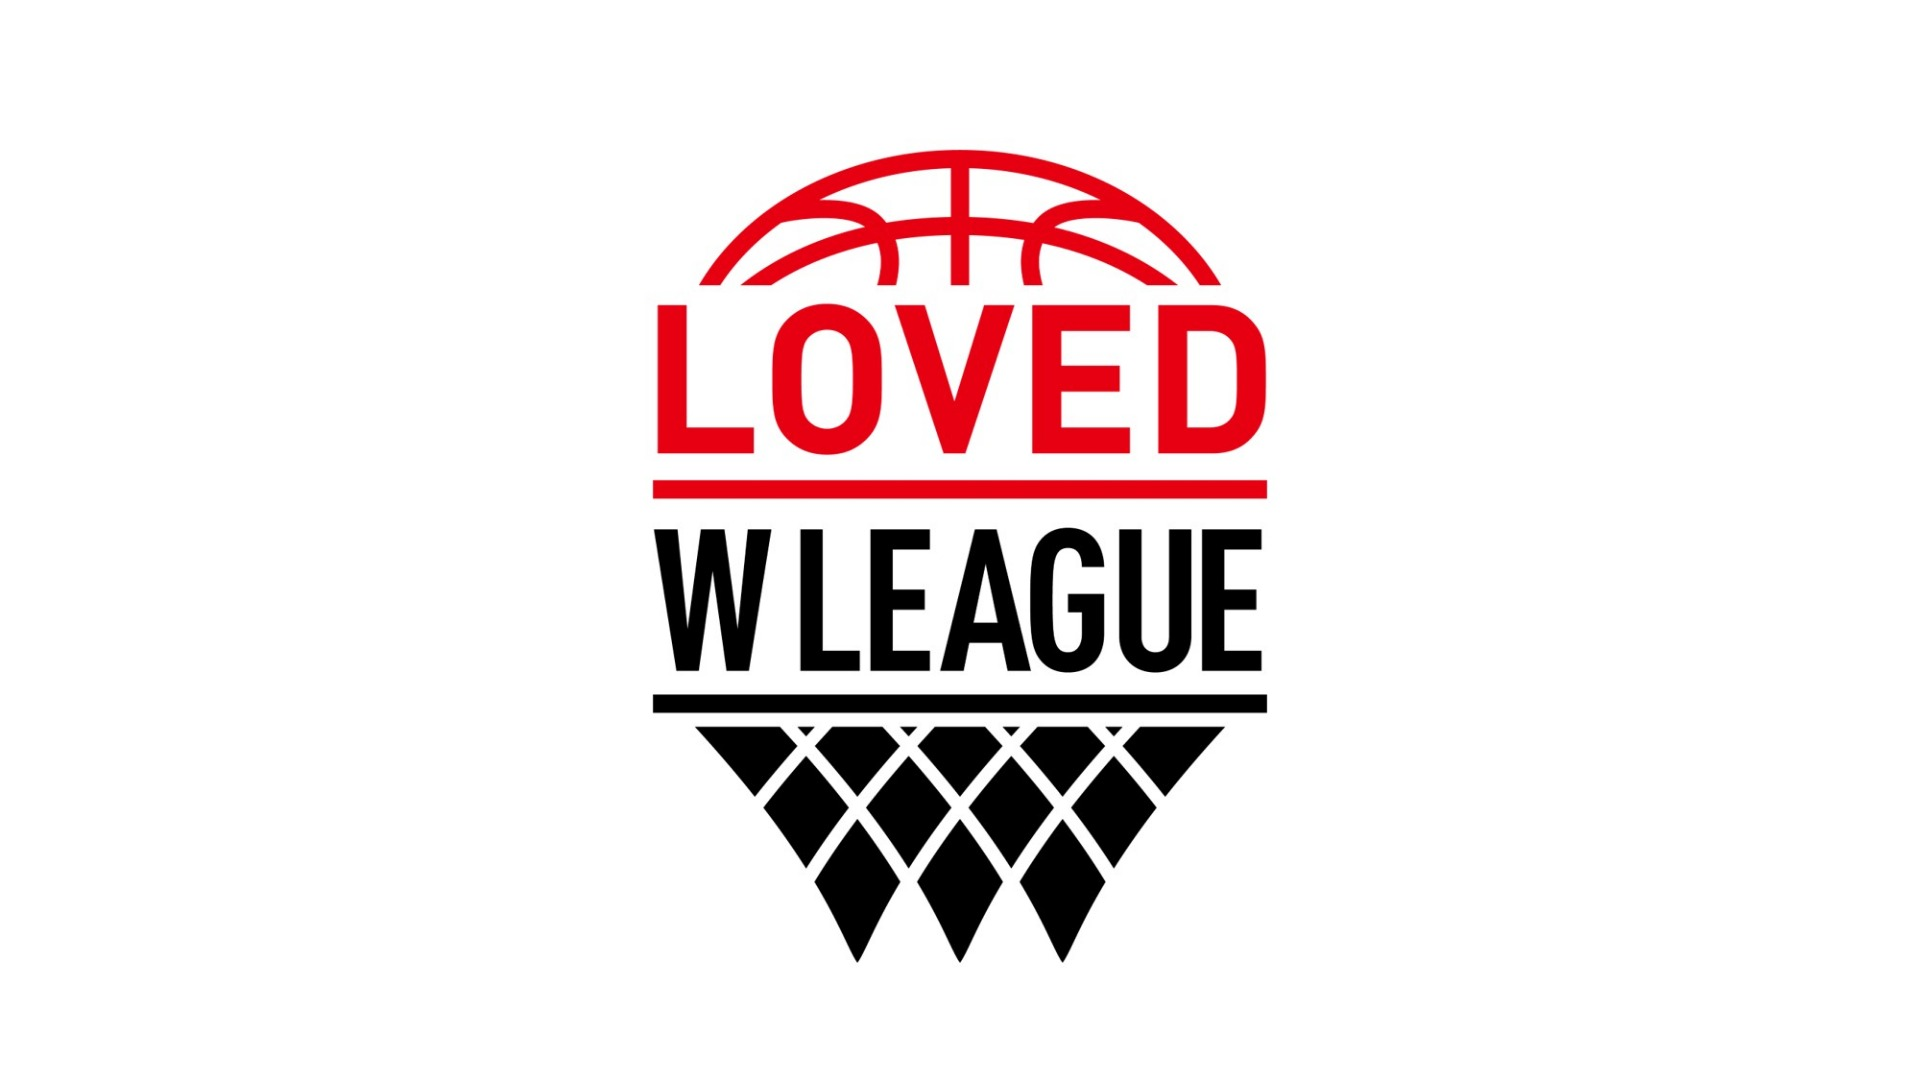 """LOVED""な試みにご注目! 新コンセプトロゴ 『LOVED W LEAGUE』"